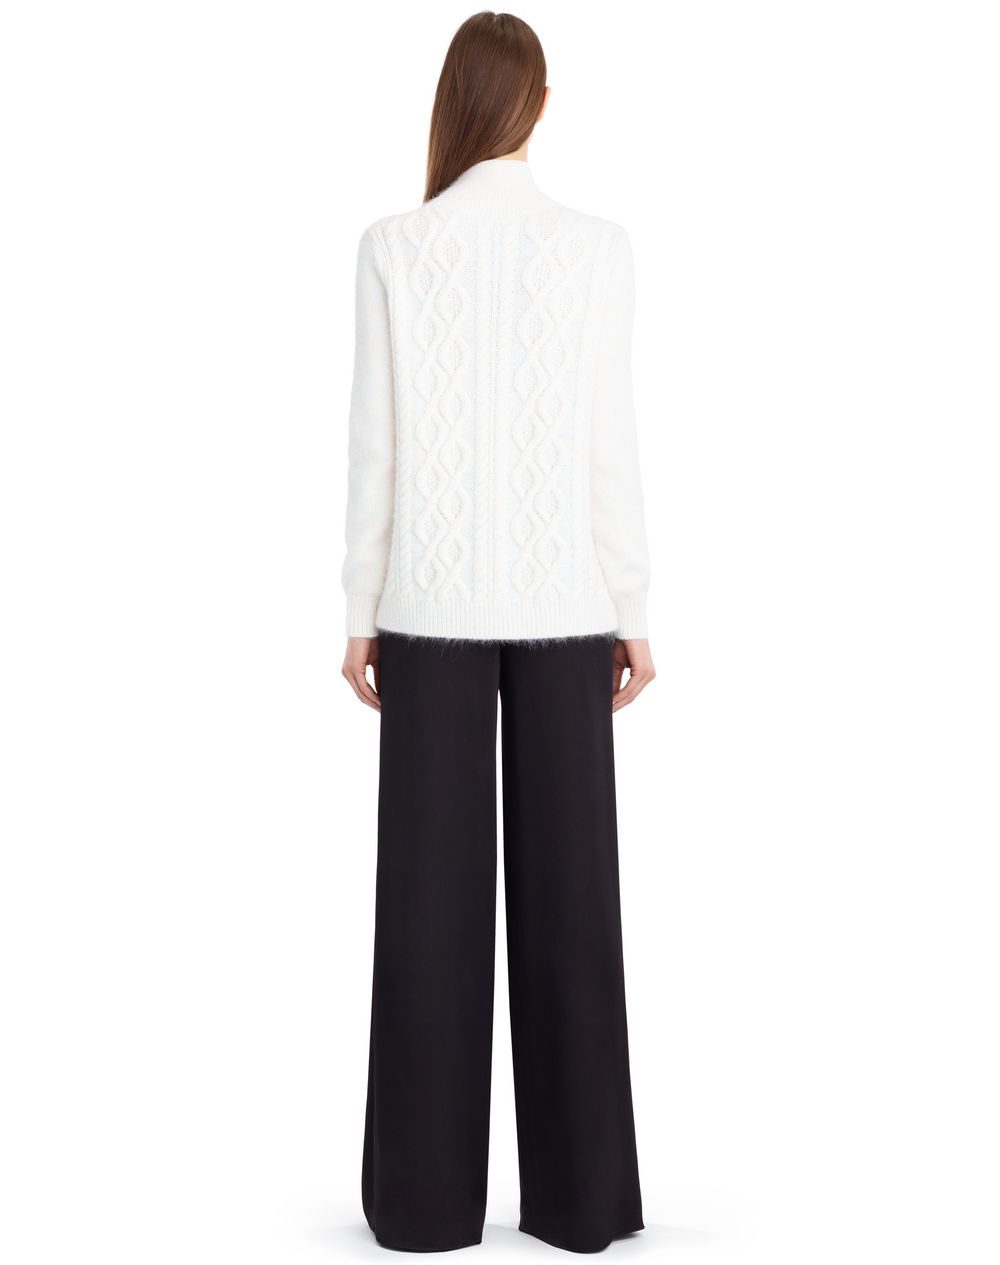 CABLE KNIT SWEATER - Lanvin